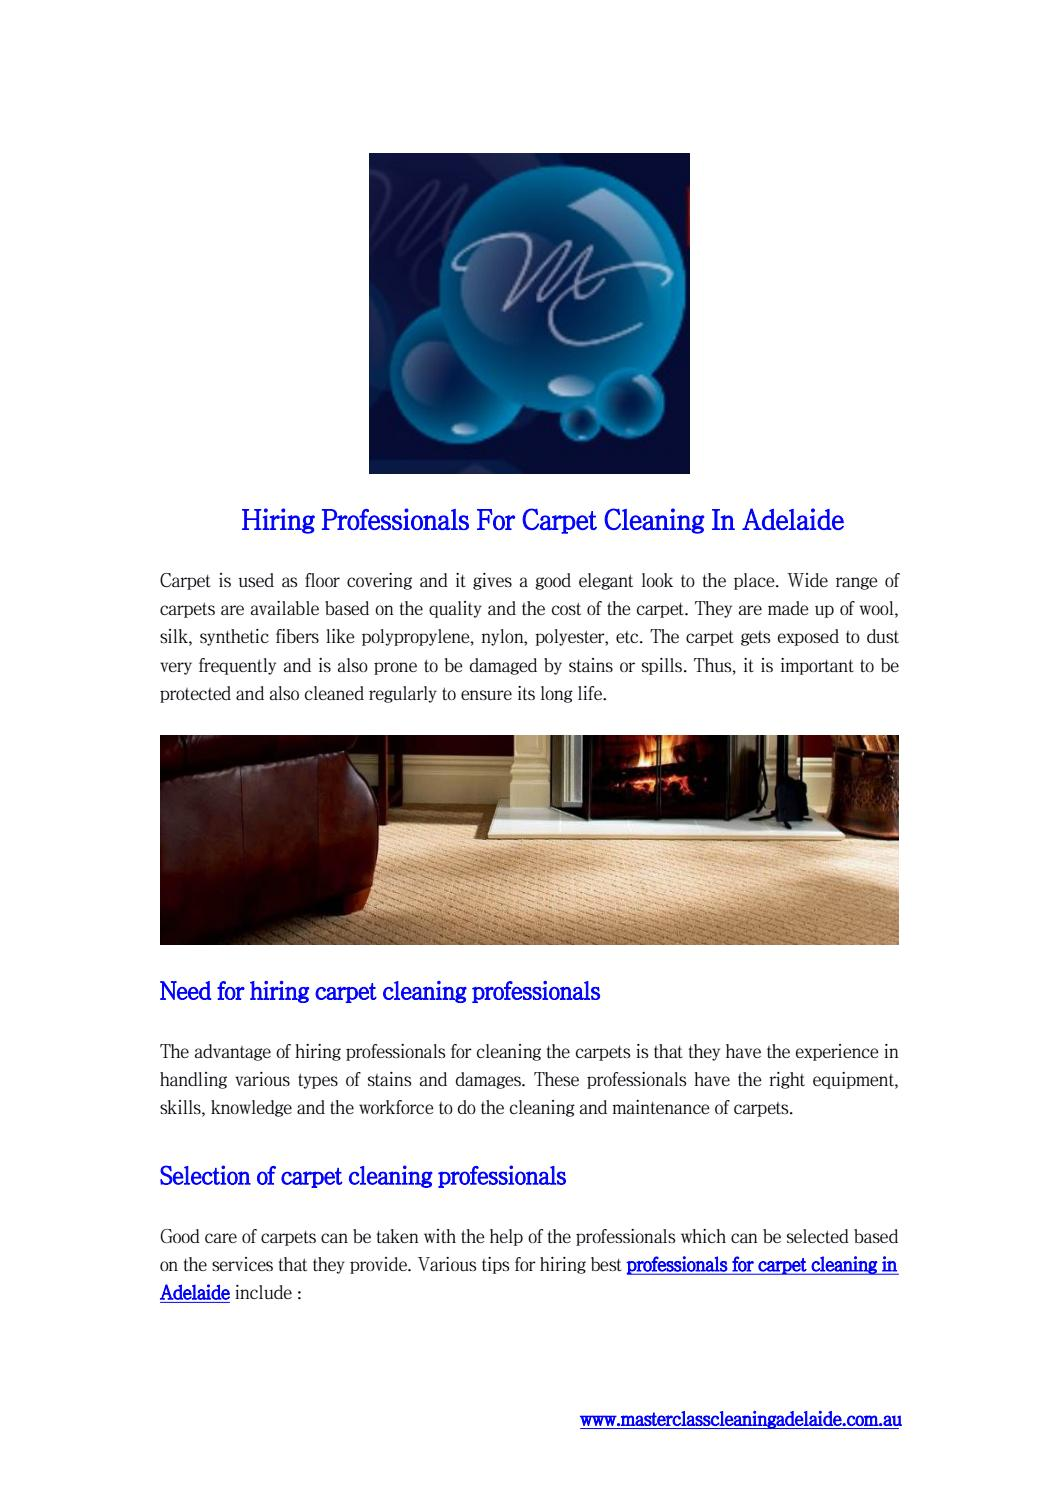 Hiring professionals for carpet cleaning in adelaide by Master Class Cleaning Adelaide - issuu